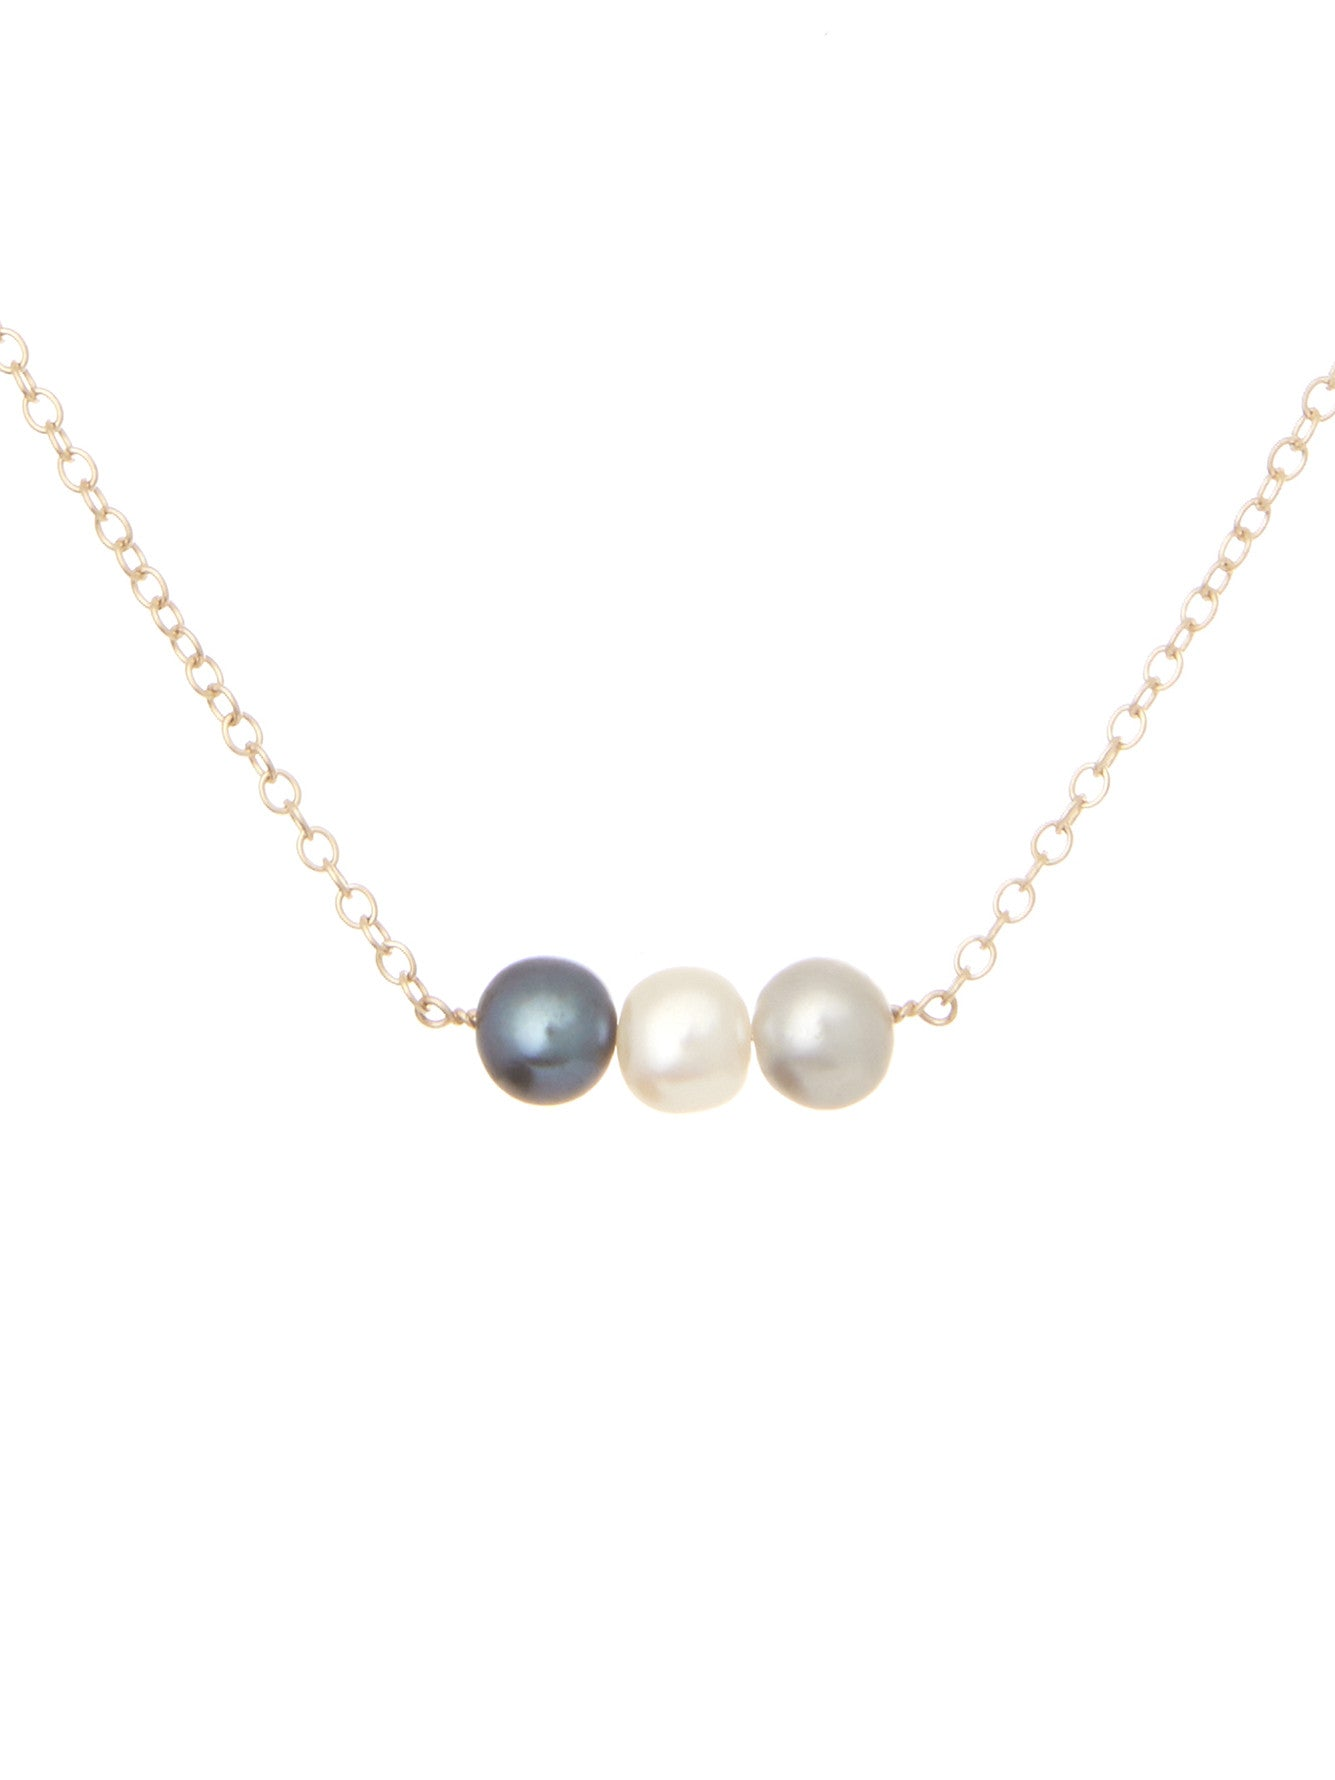 view meridian alternate product necklaces necklace os jewellery pearl size